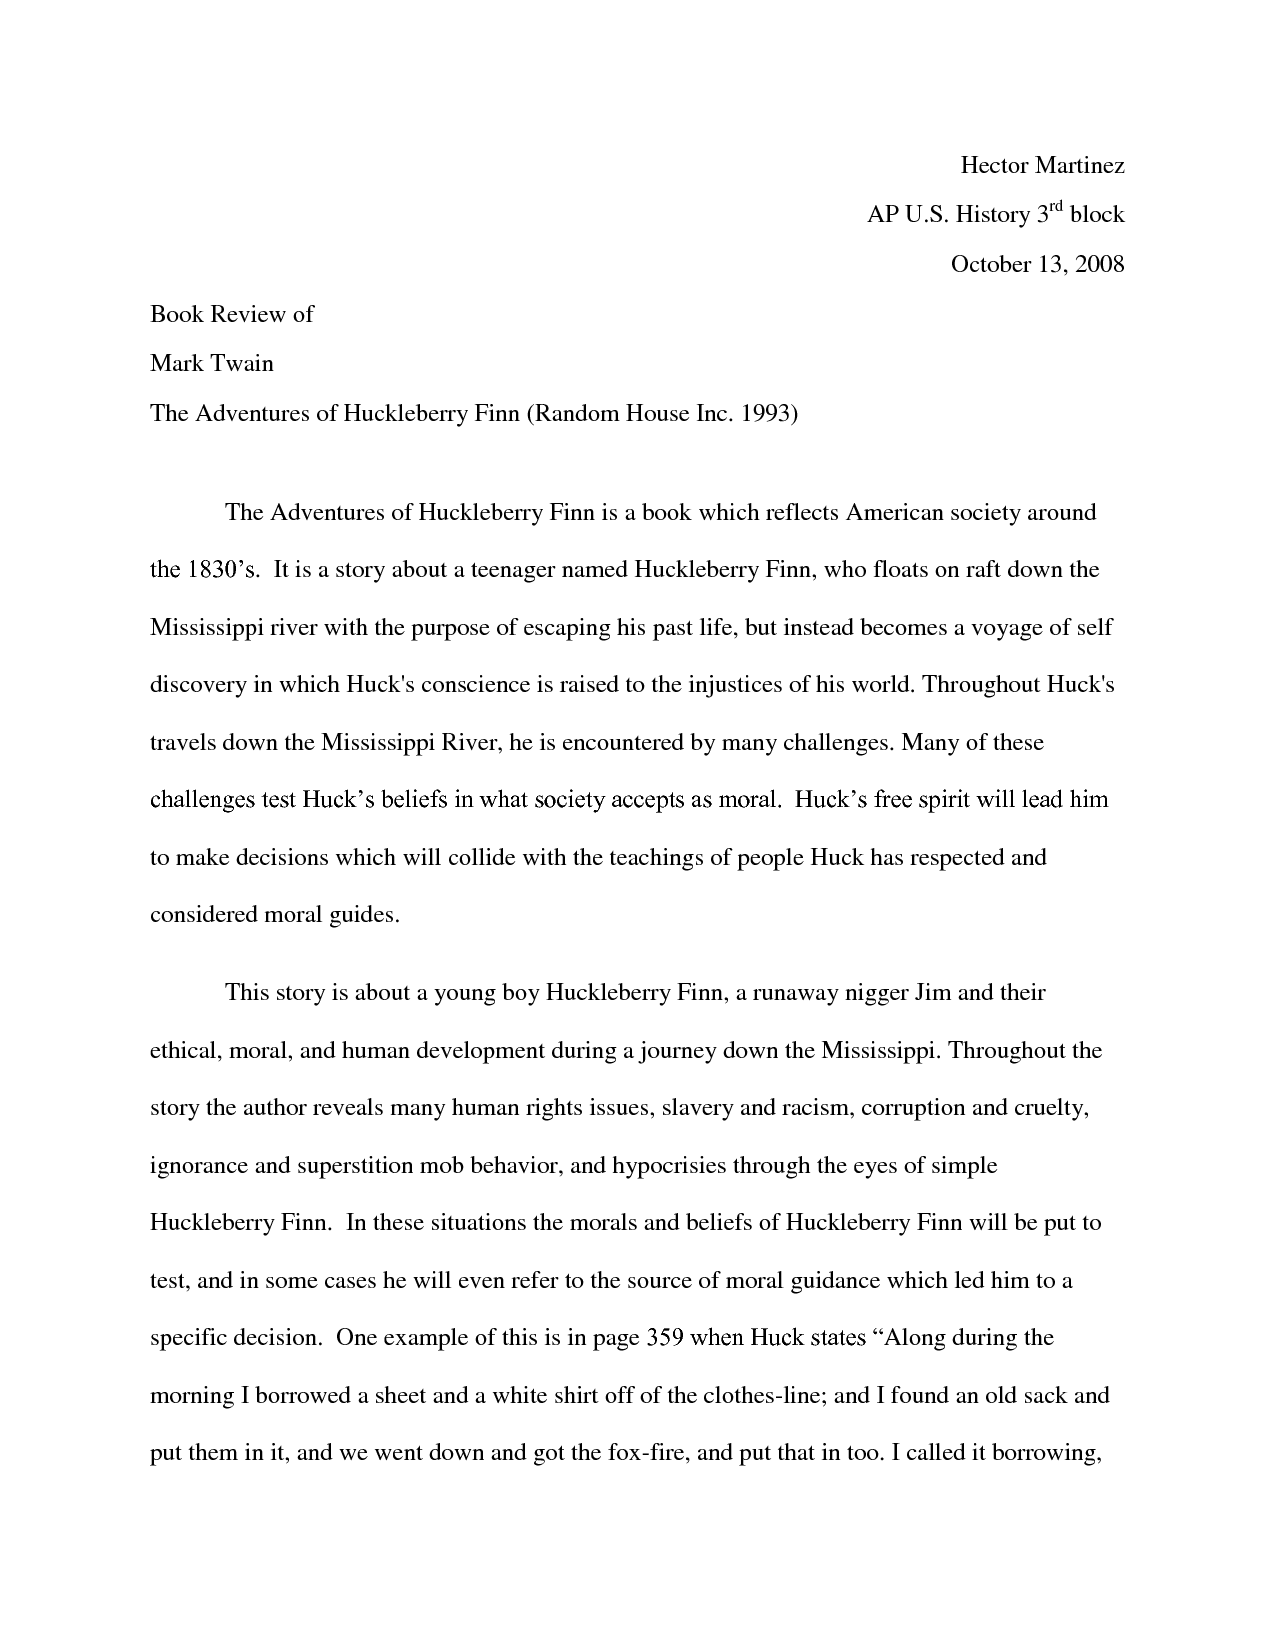 the moral and ethical development of huckleberry finn